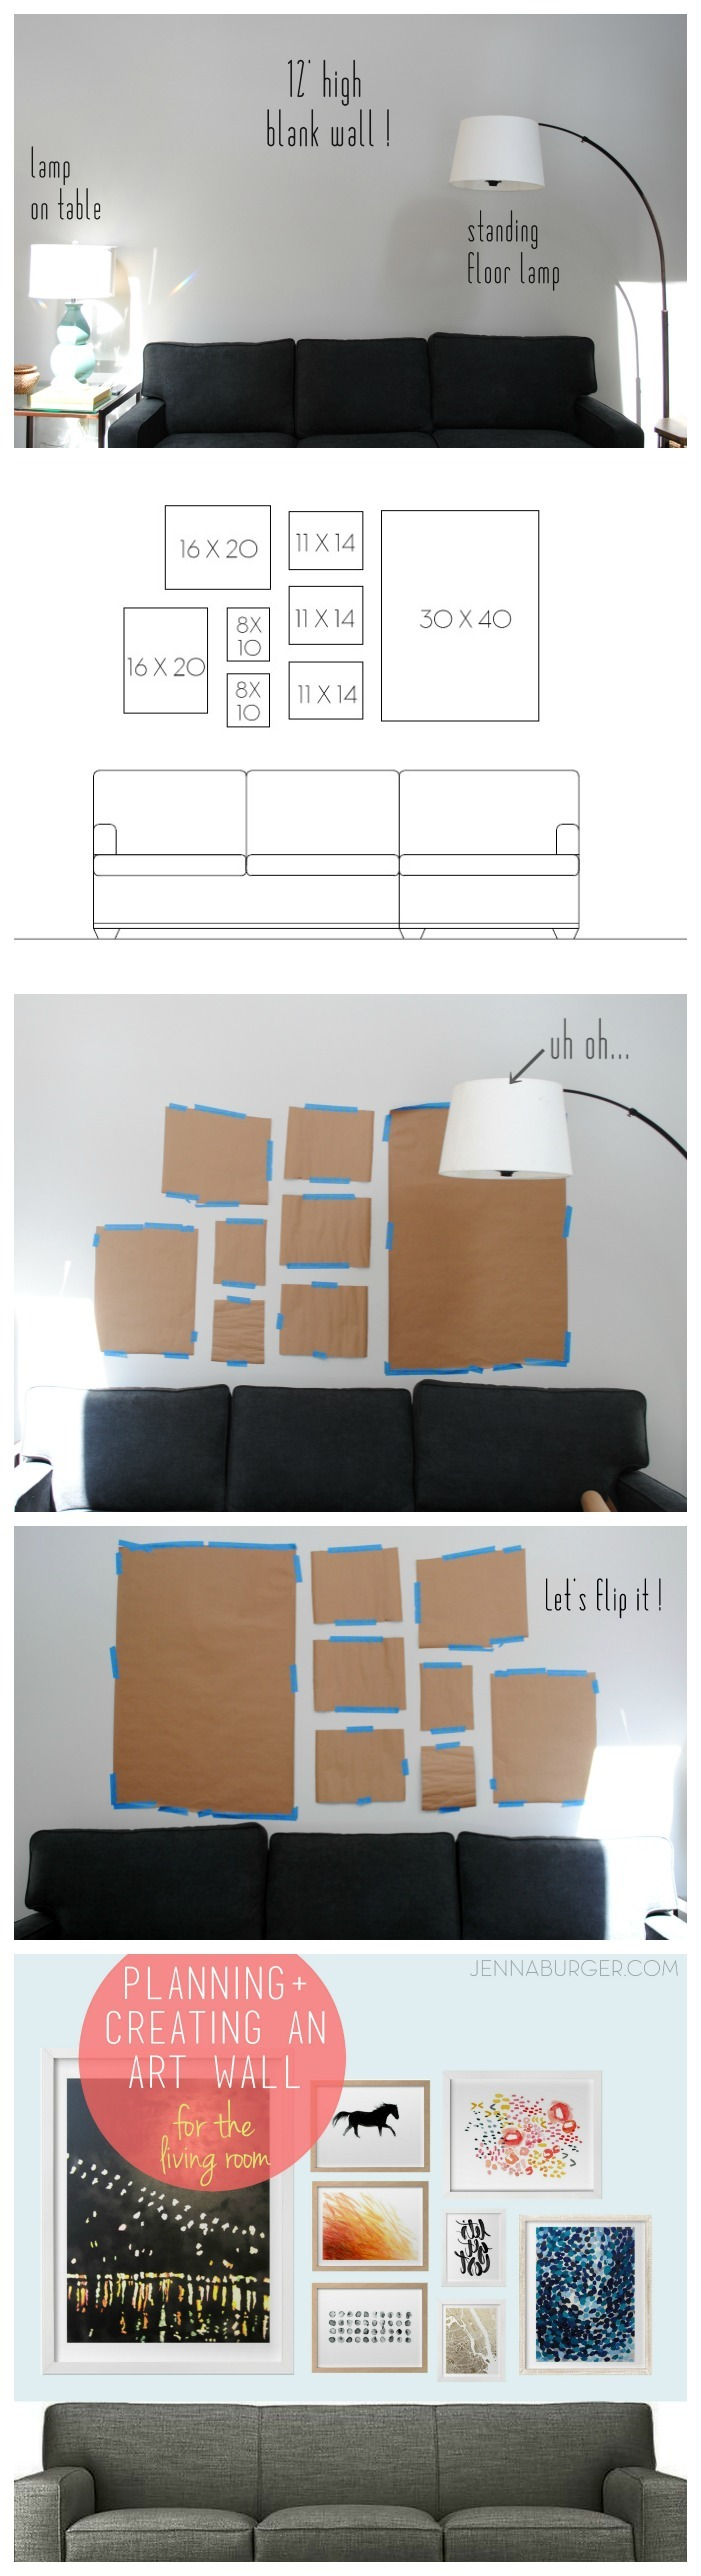 IDEAS + TIPS for Planning & Creating an Art Wall in your home.